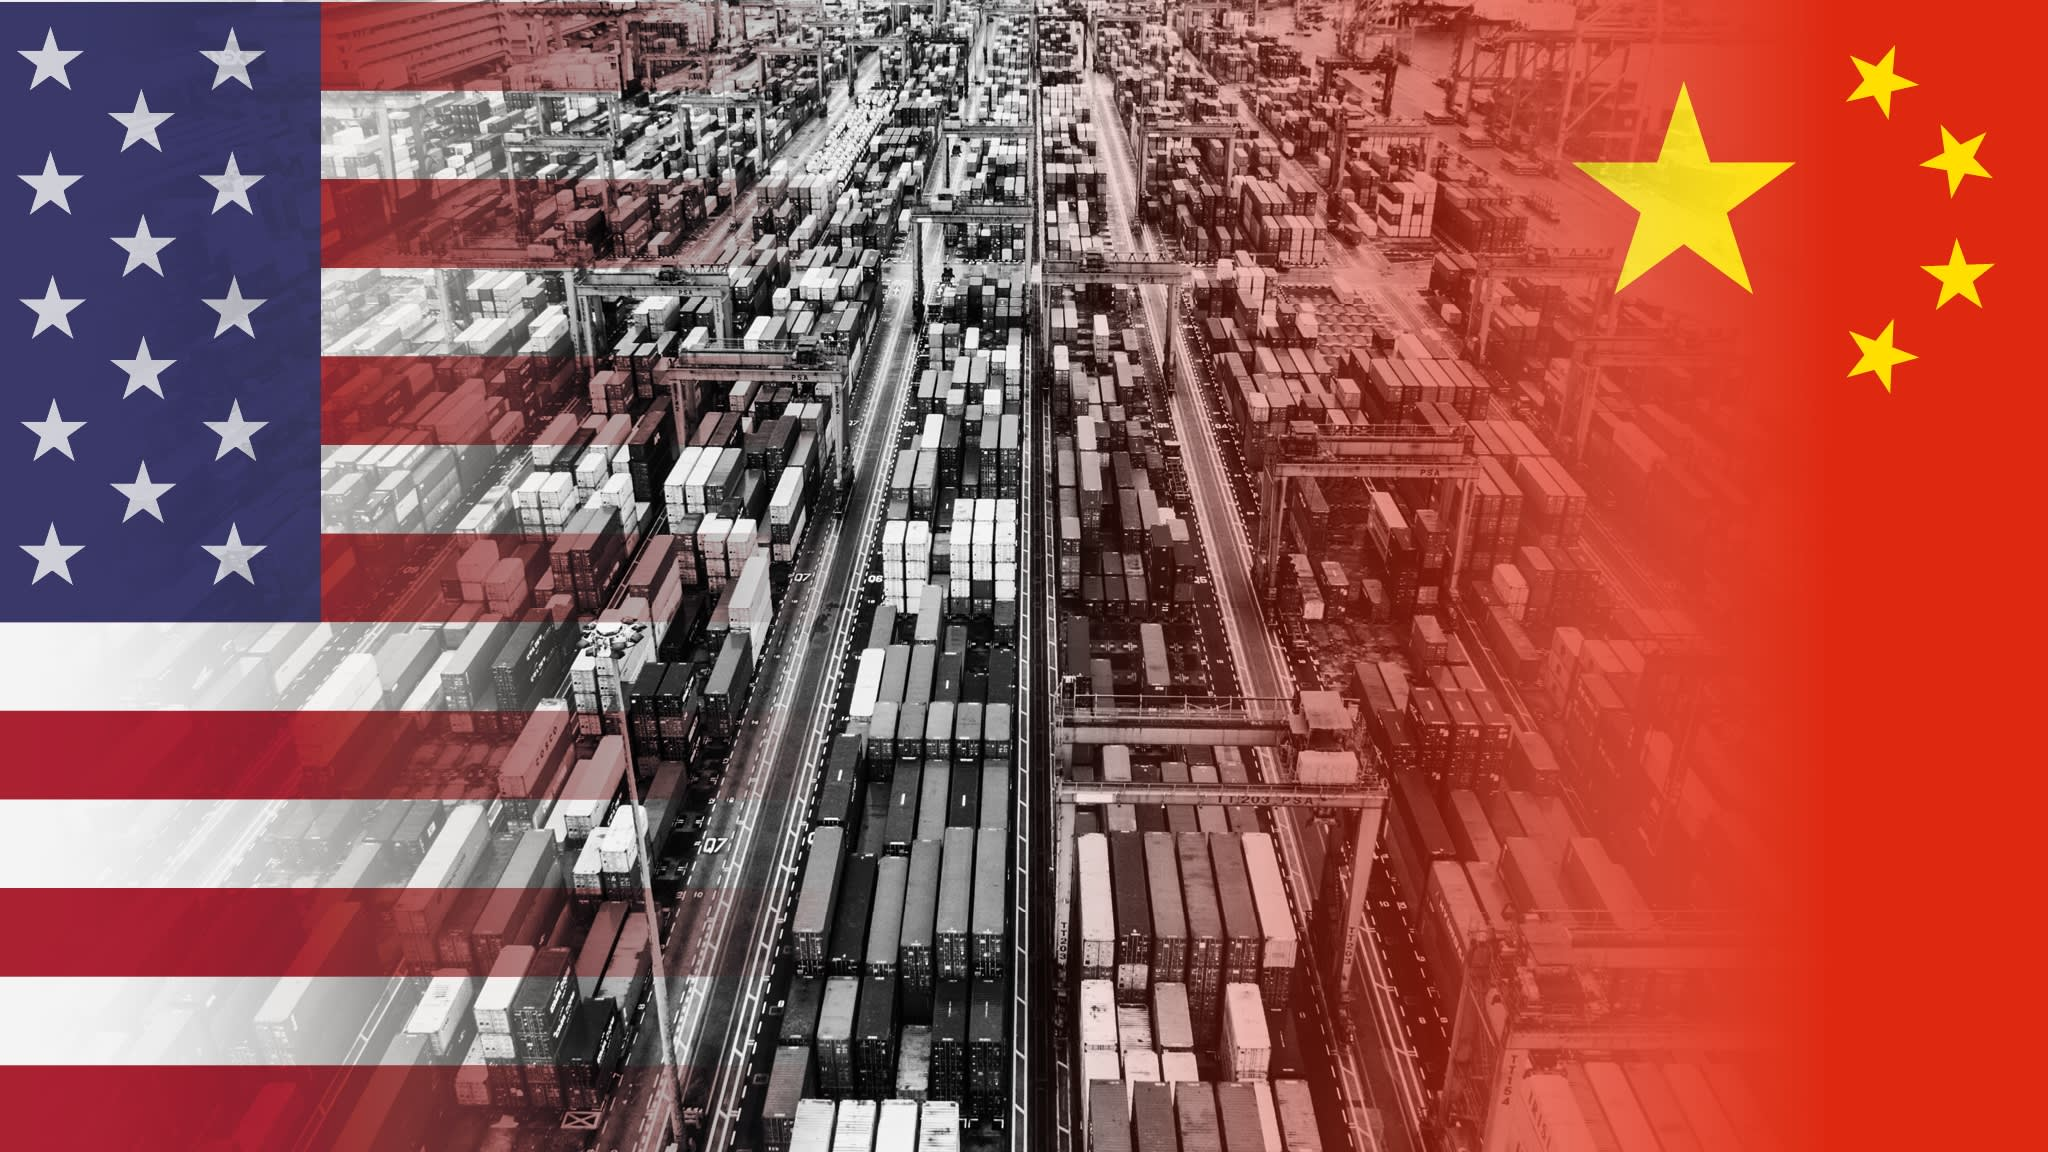 Trade war risks taking heavy toll on growth says OECD